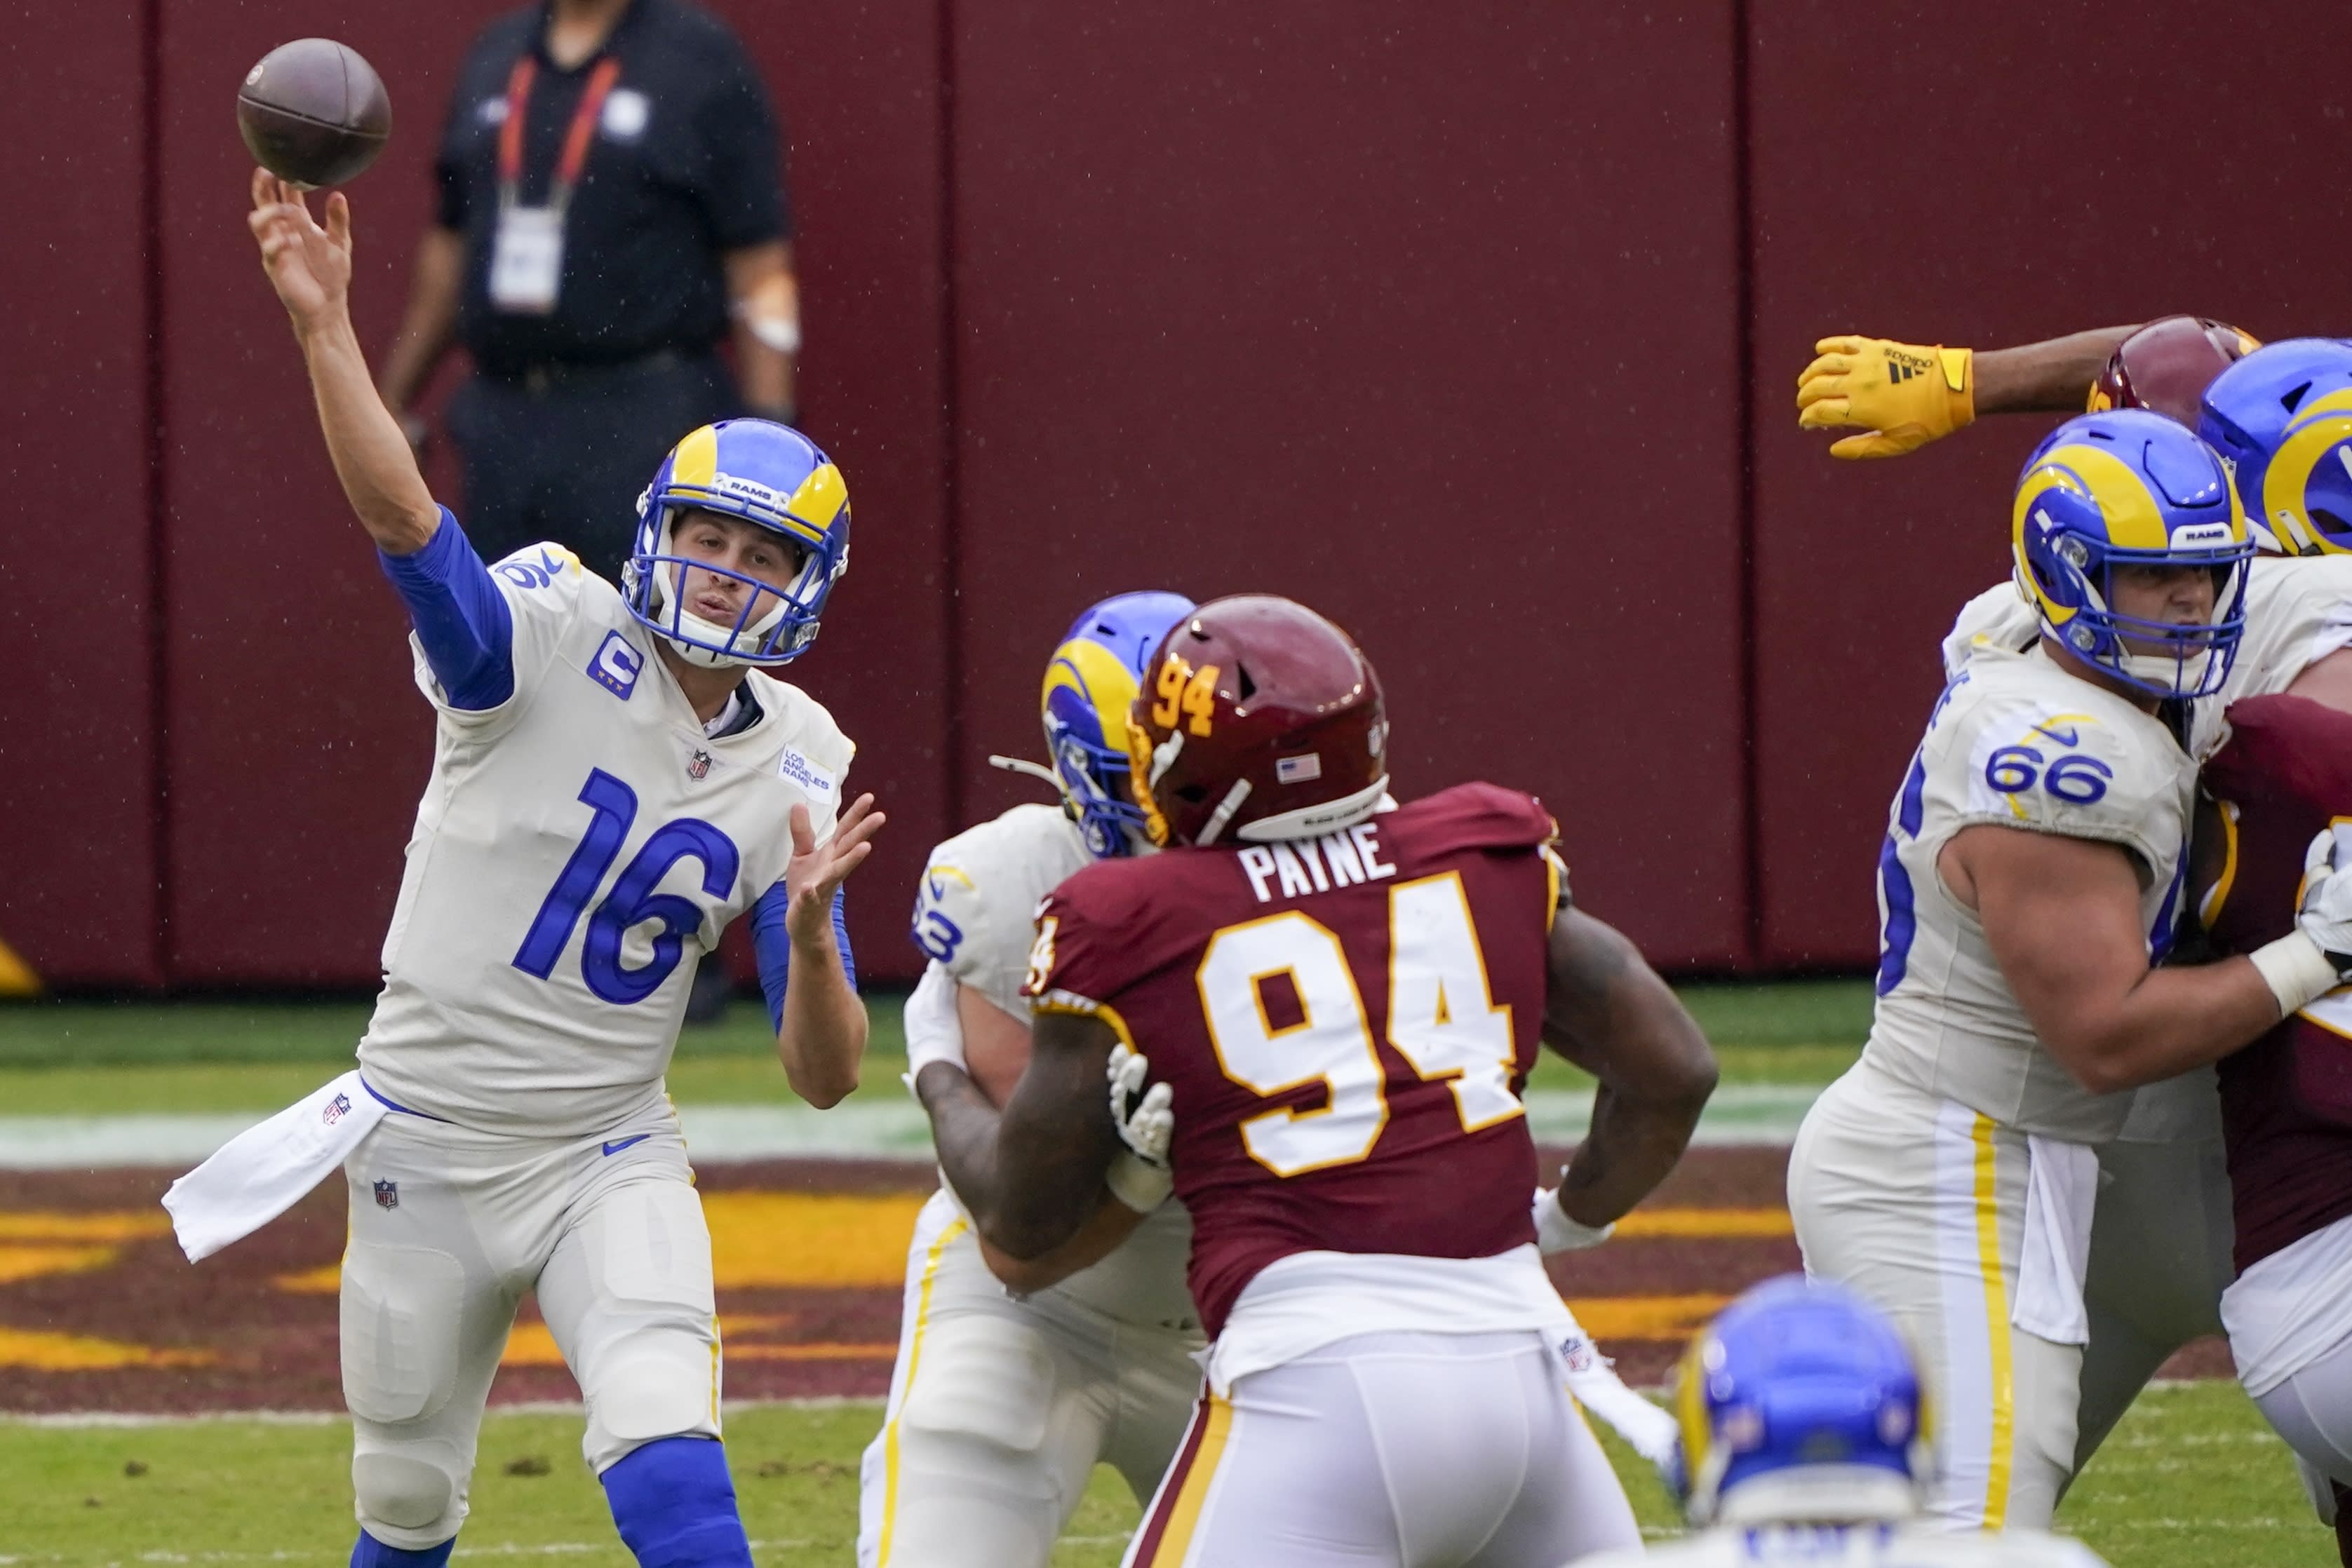 Los Angeles Rams quarterback Jared Goff throws during the first half of an NFL football game against the Washington Football Team Sunday, Oct. 11, 2020, in Landover, Md. (AP Photo/Susan Walsh)